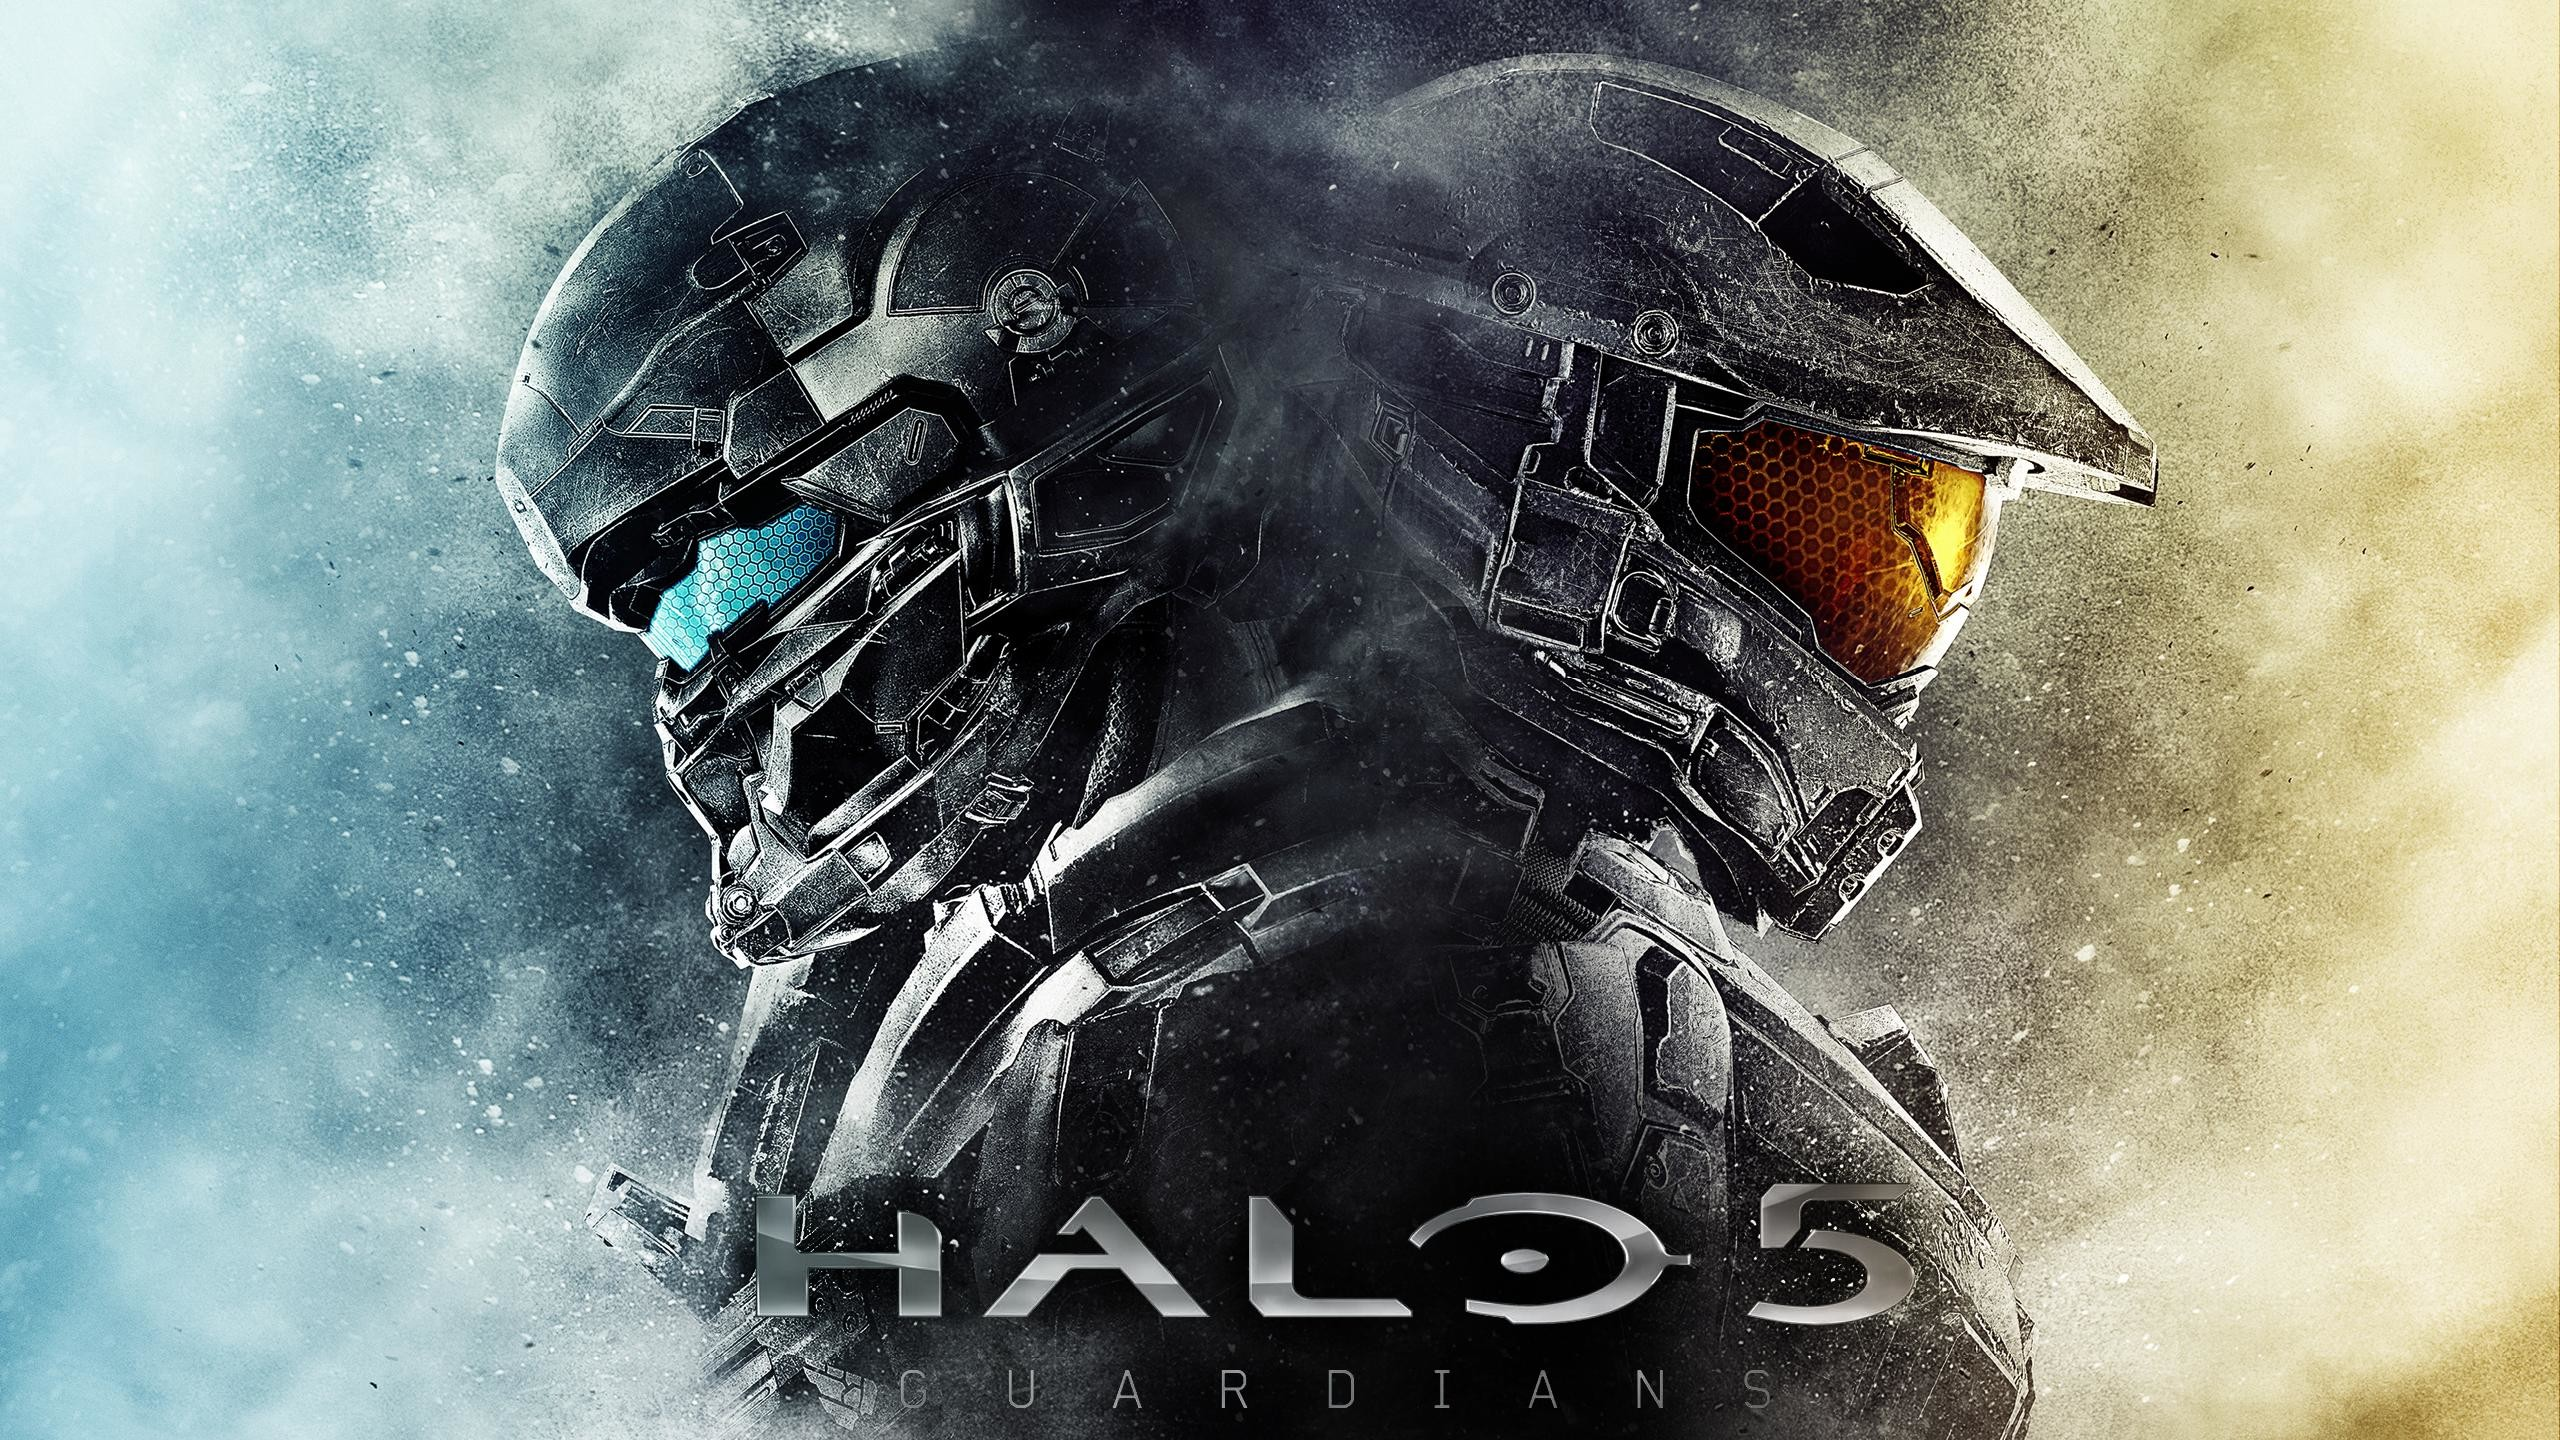 2560x1440 Epic Halo 5 Guardians E3 2015 Style Wallpaper by Drax122 high res